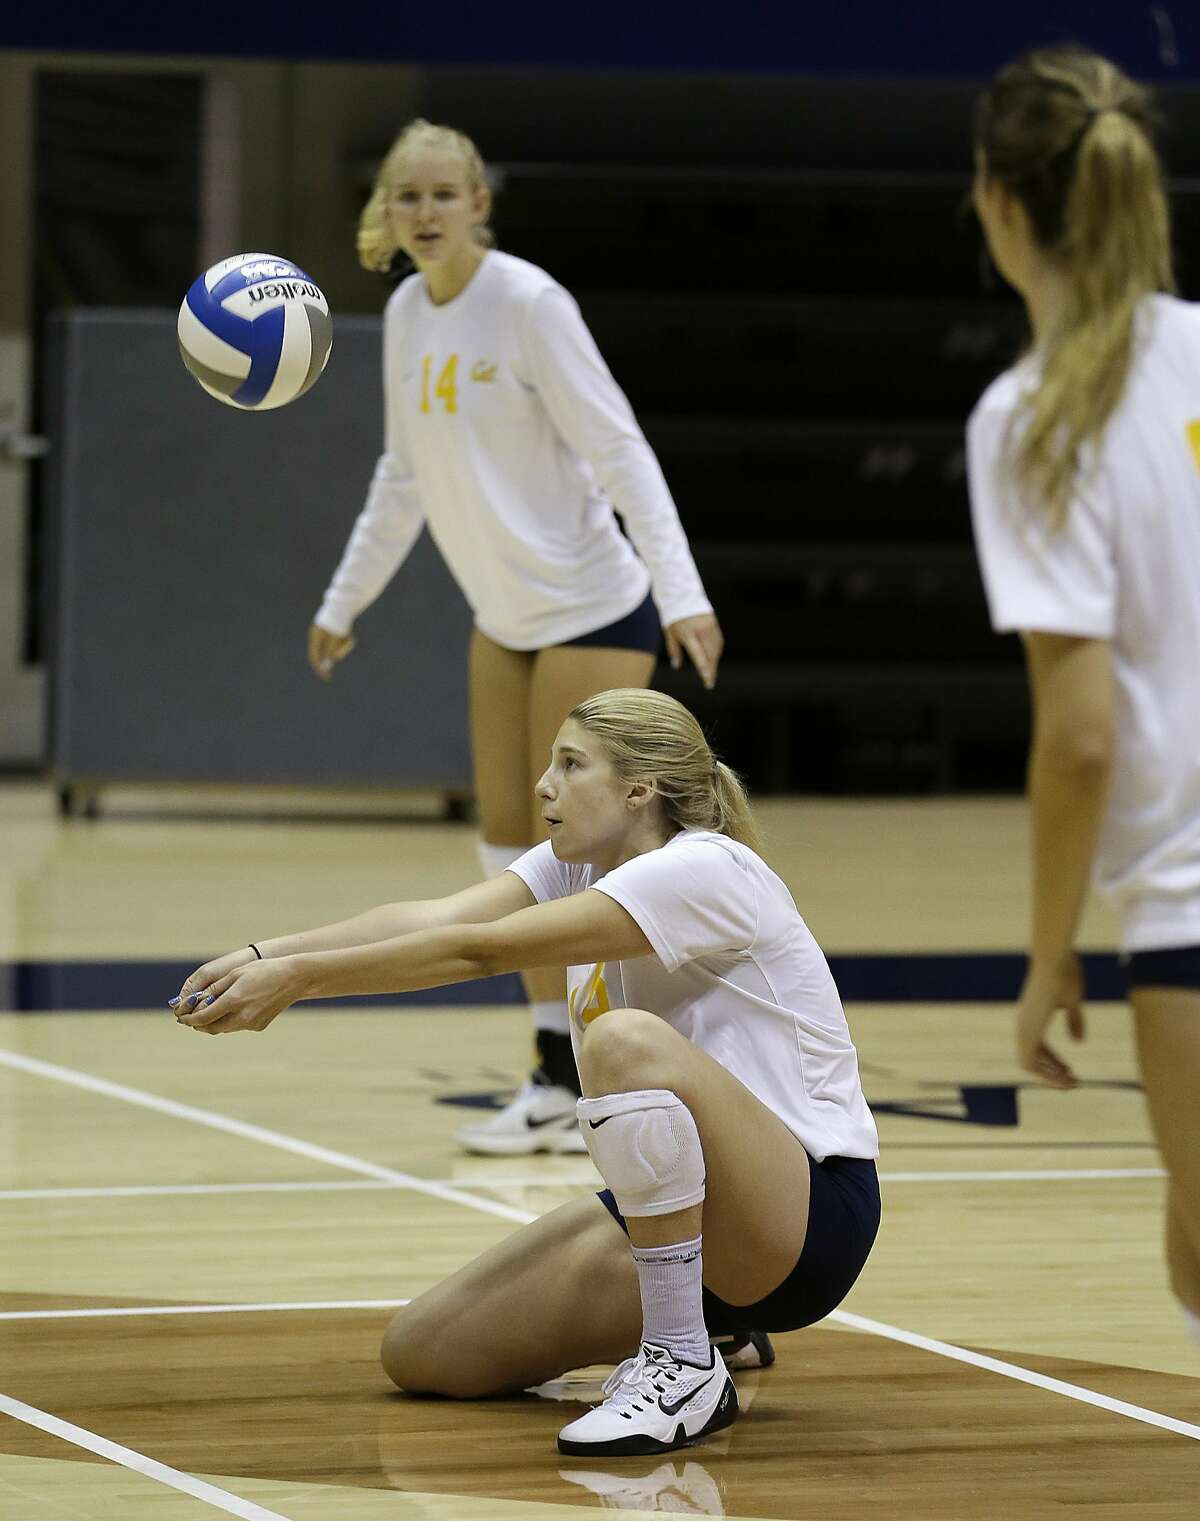 In this photo taken Tuesday, Aug. 30, 2016, Savannah Rennie, who underwent a liver transplant, sets up the ball during volleyball practice at the University of California, Berkeley in Berkeley, Calif. Rennie returned to Cal early in August following five months in Indiana, where she received a crucial liver transplant that has allowed her slowly, somewhat impatiently to get back on the volleyball court for the Golden Bears. And she might even get in a match again by season's end, though nobody's rushing that process but Rennie herself. (AP Photo/Eric Risberg)